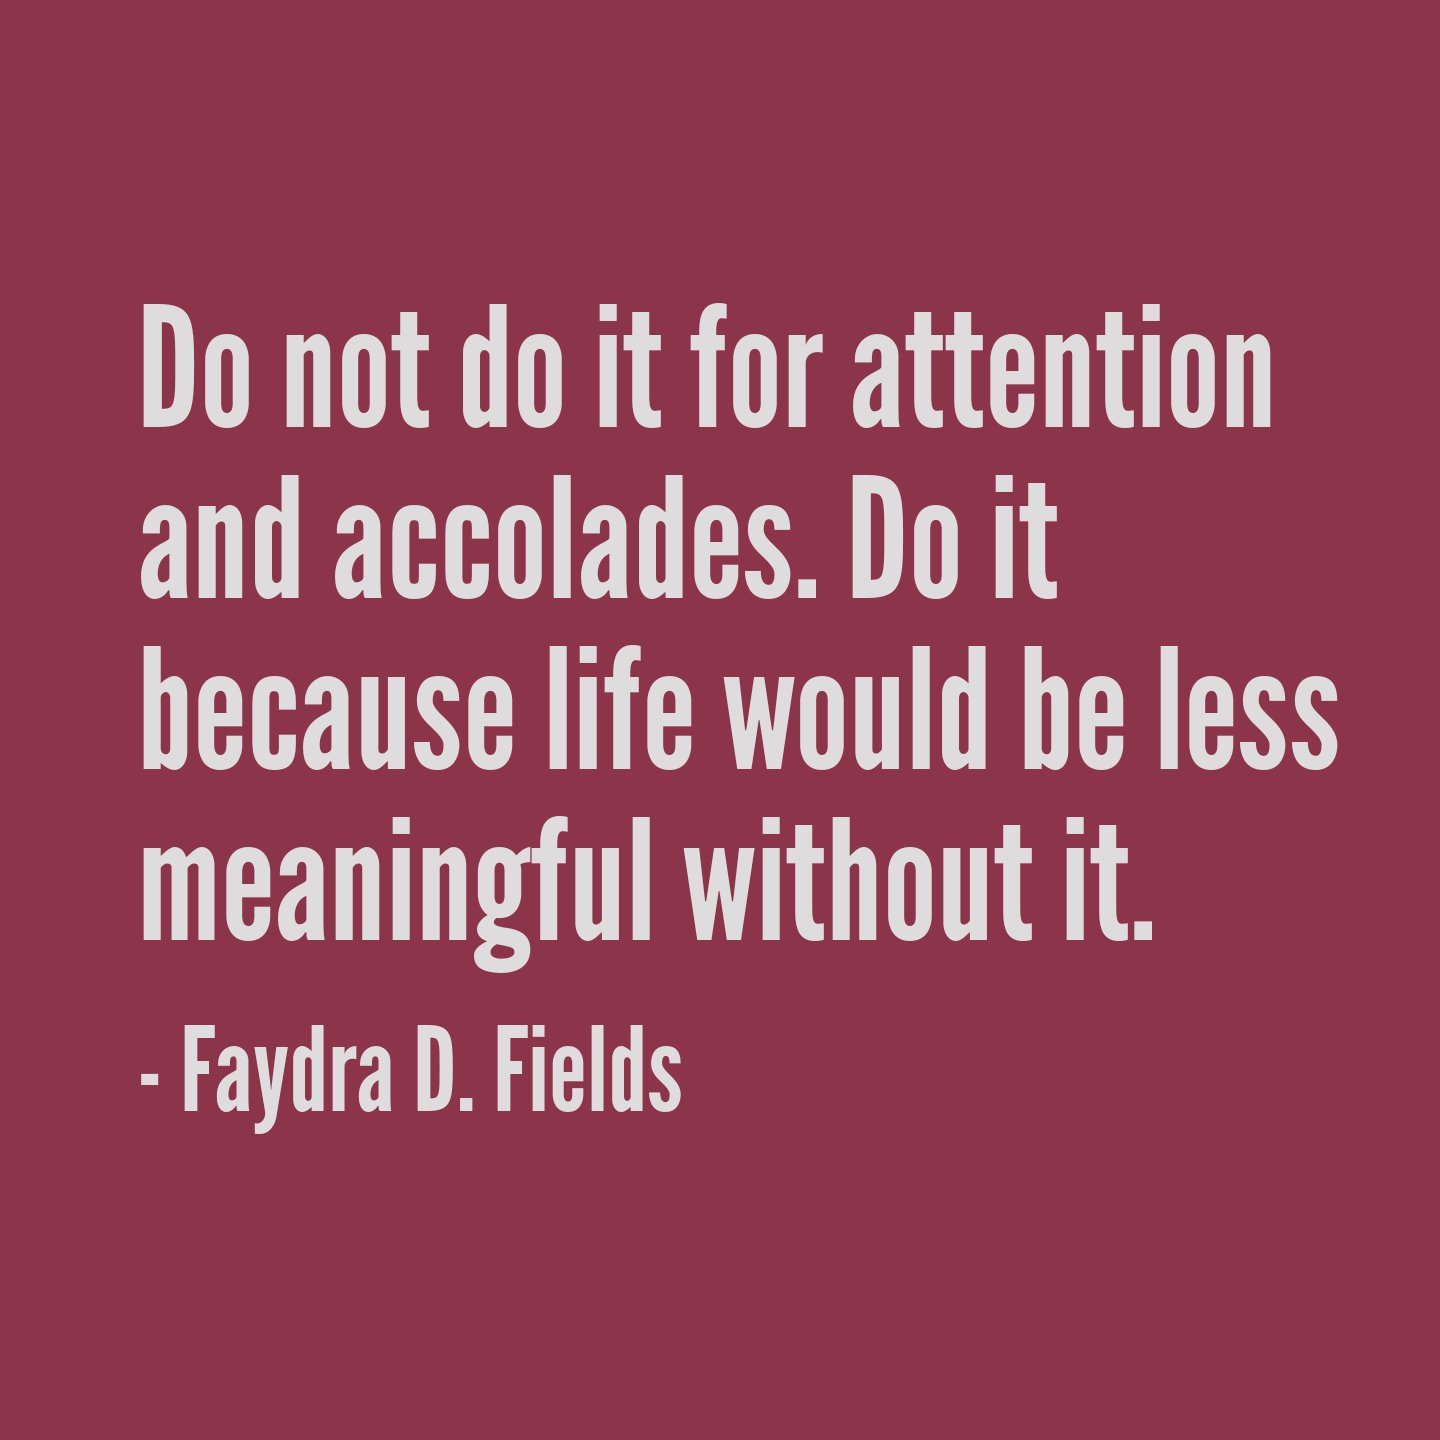 Do not do it for attention and accolades. Do it because life would be l... https://t.co/Hpjw5SQdCR #maxaxioms https://t.co/CiqGHKspT7